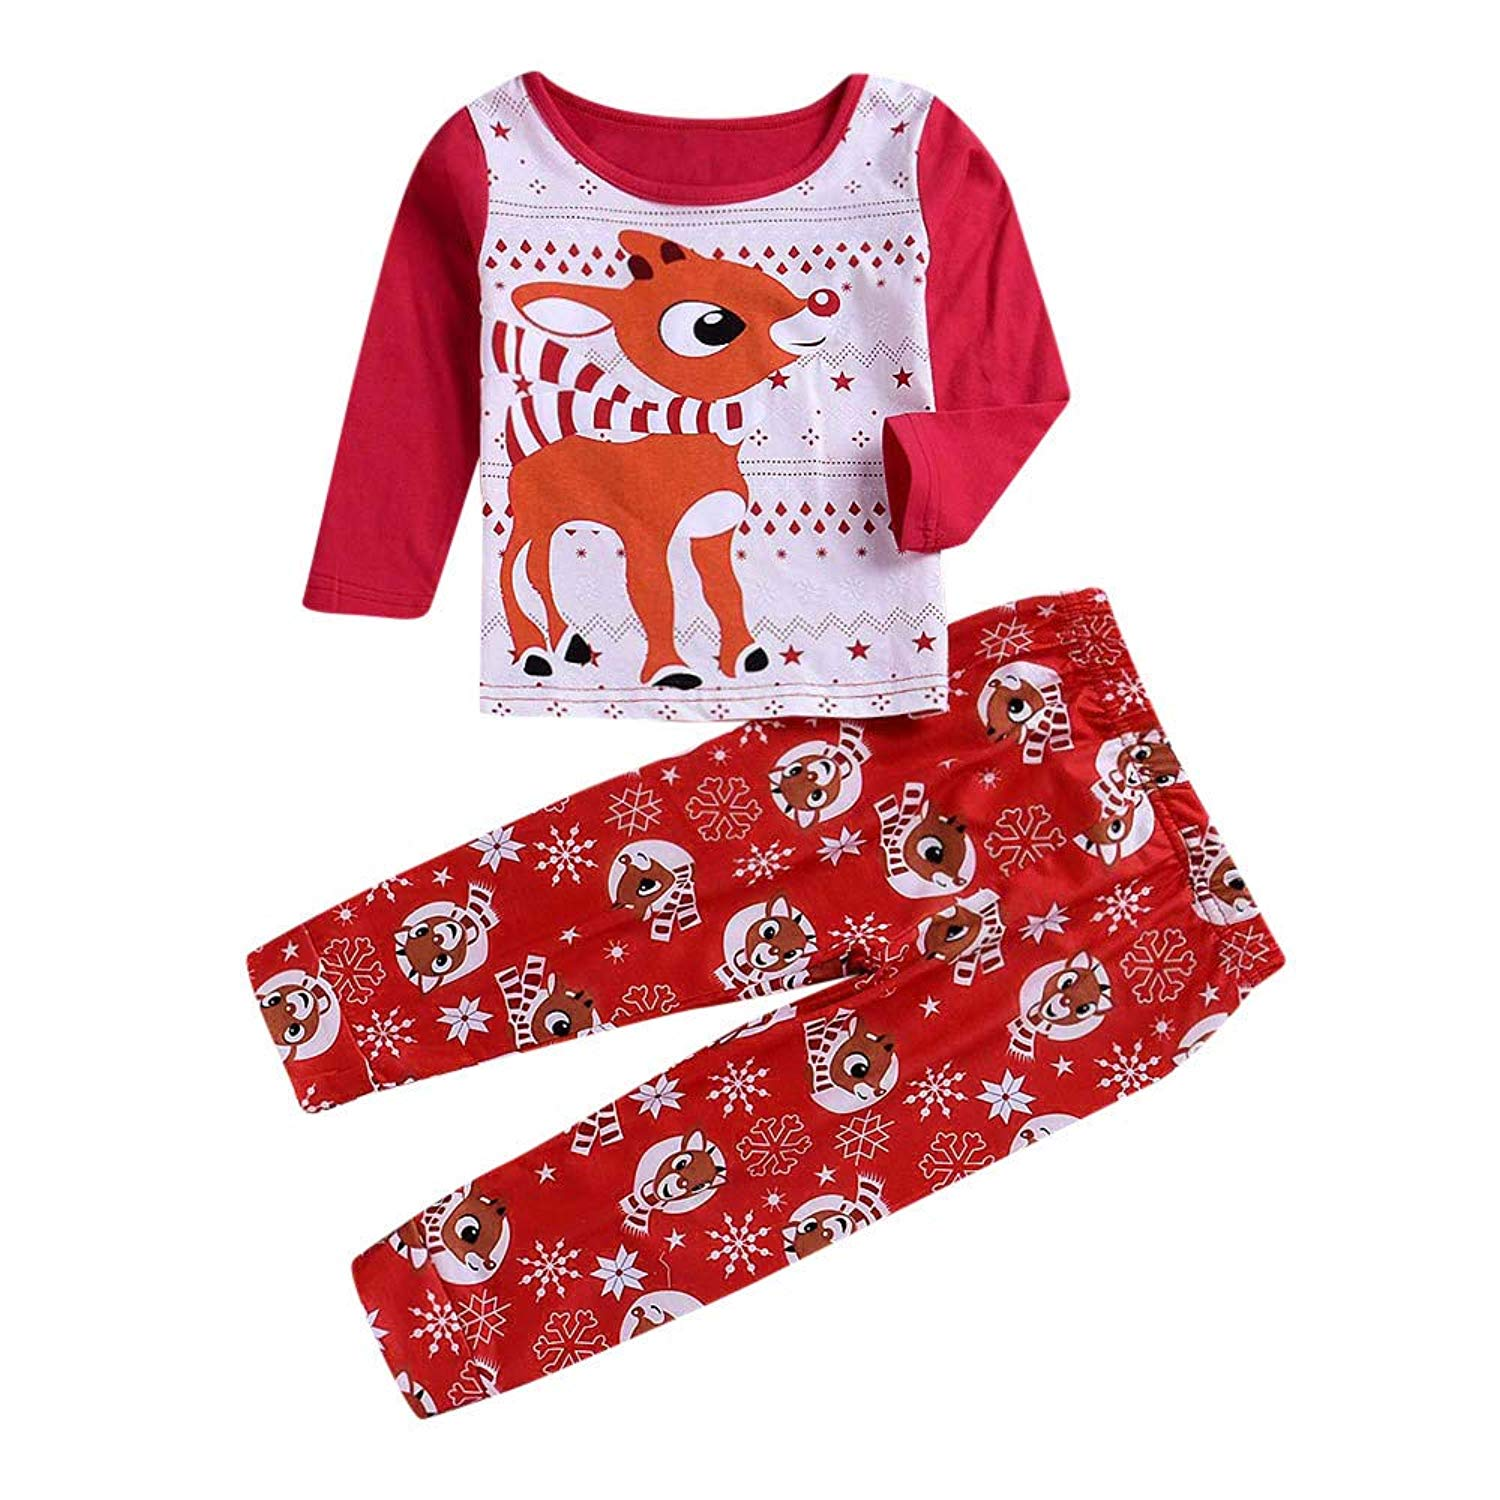 dc593a1eb7 Get Quotations · Winsummer Christmas Matching Family Pajama Set Red Holiday Family  Matching Winter Snowflake Sleepwear Pjs Sets